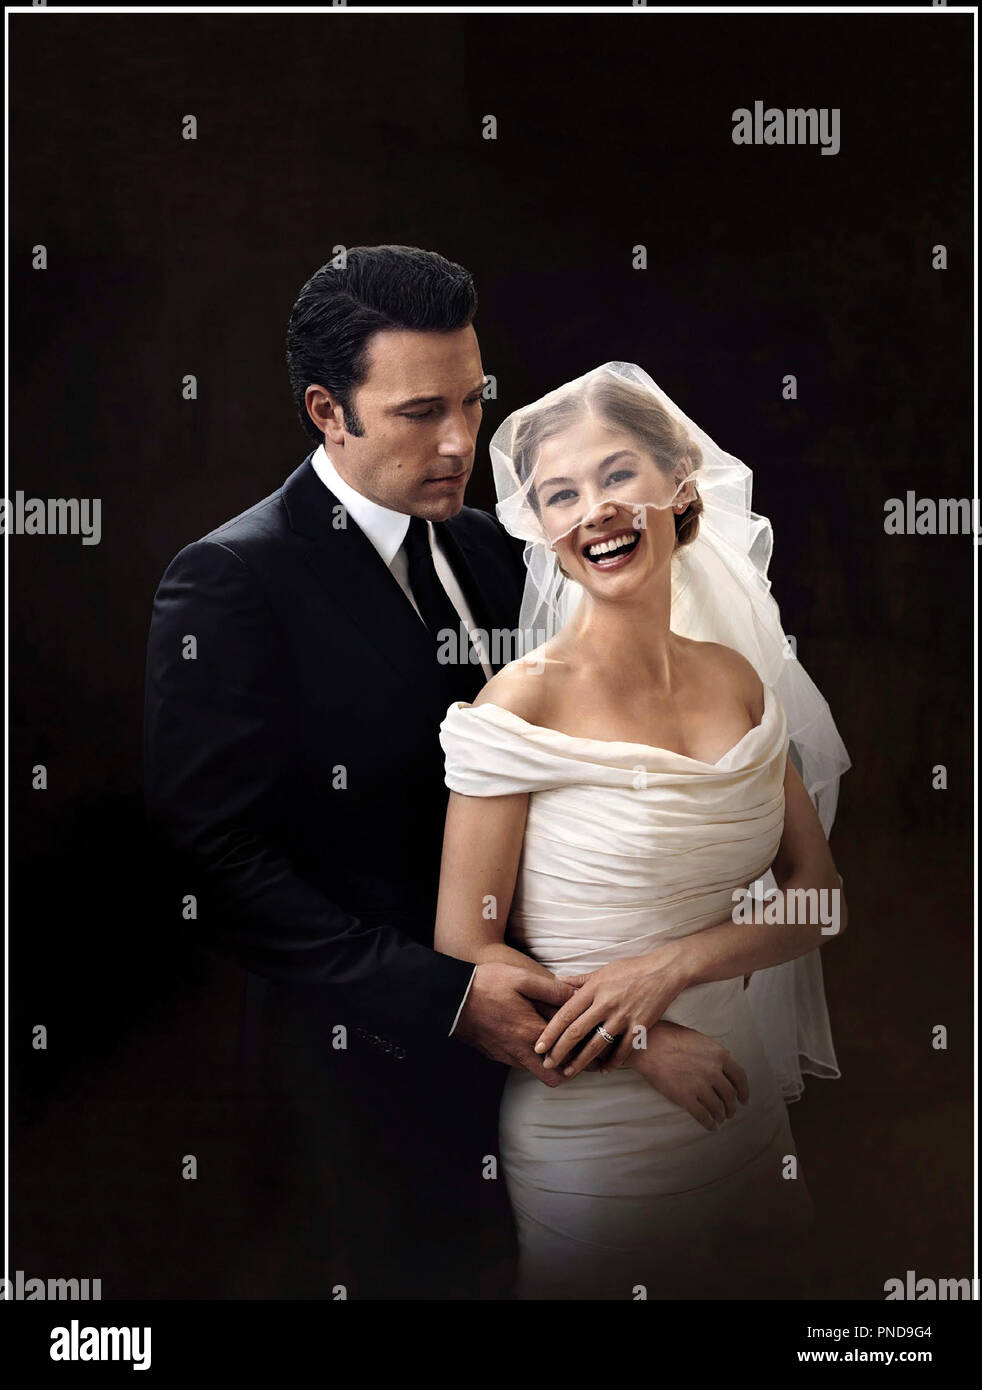 Prod DB © 20th Century Fox - New Regency Pictures - Pacific Standard / DR GONE GIRL de David Fincher 2014 USA avec Ben Affleck et Rosamund Pike robe de mariee, mariage d'apres le roman de Gillian Flynn - Stock Image